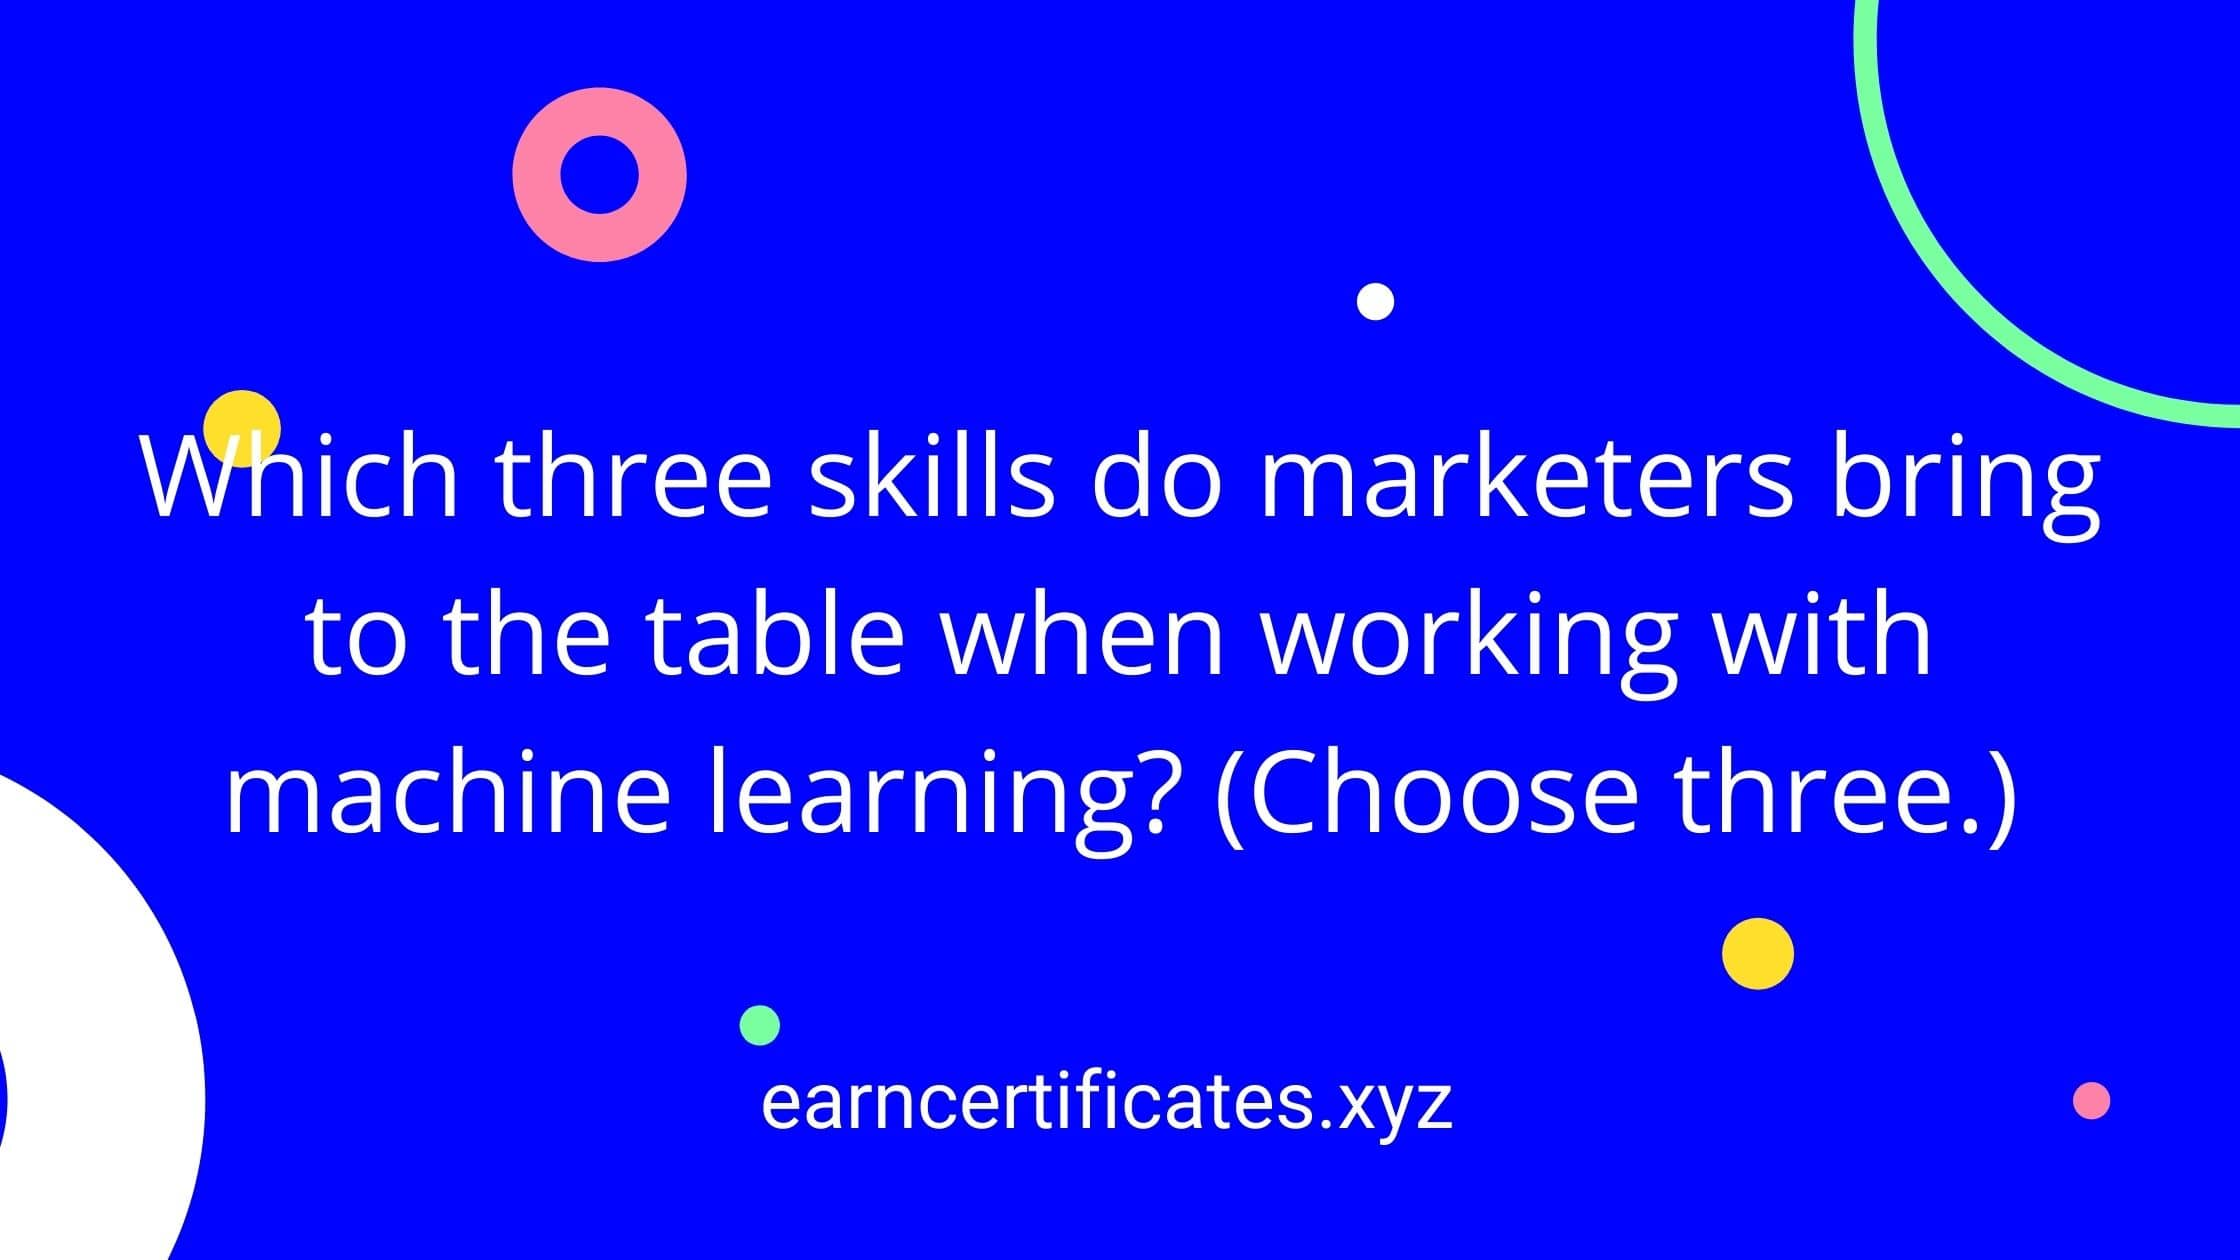 Which three skills do marketers bring to the table when working with machine learning? (Choose three.)